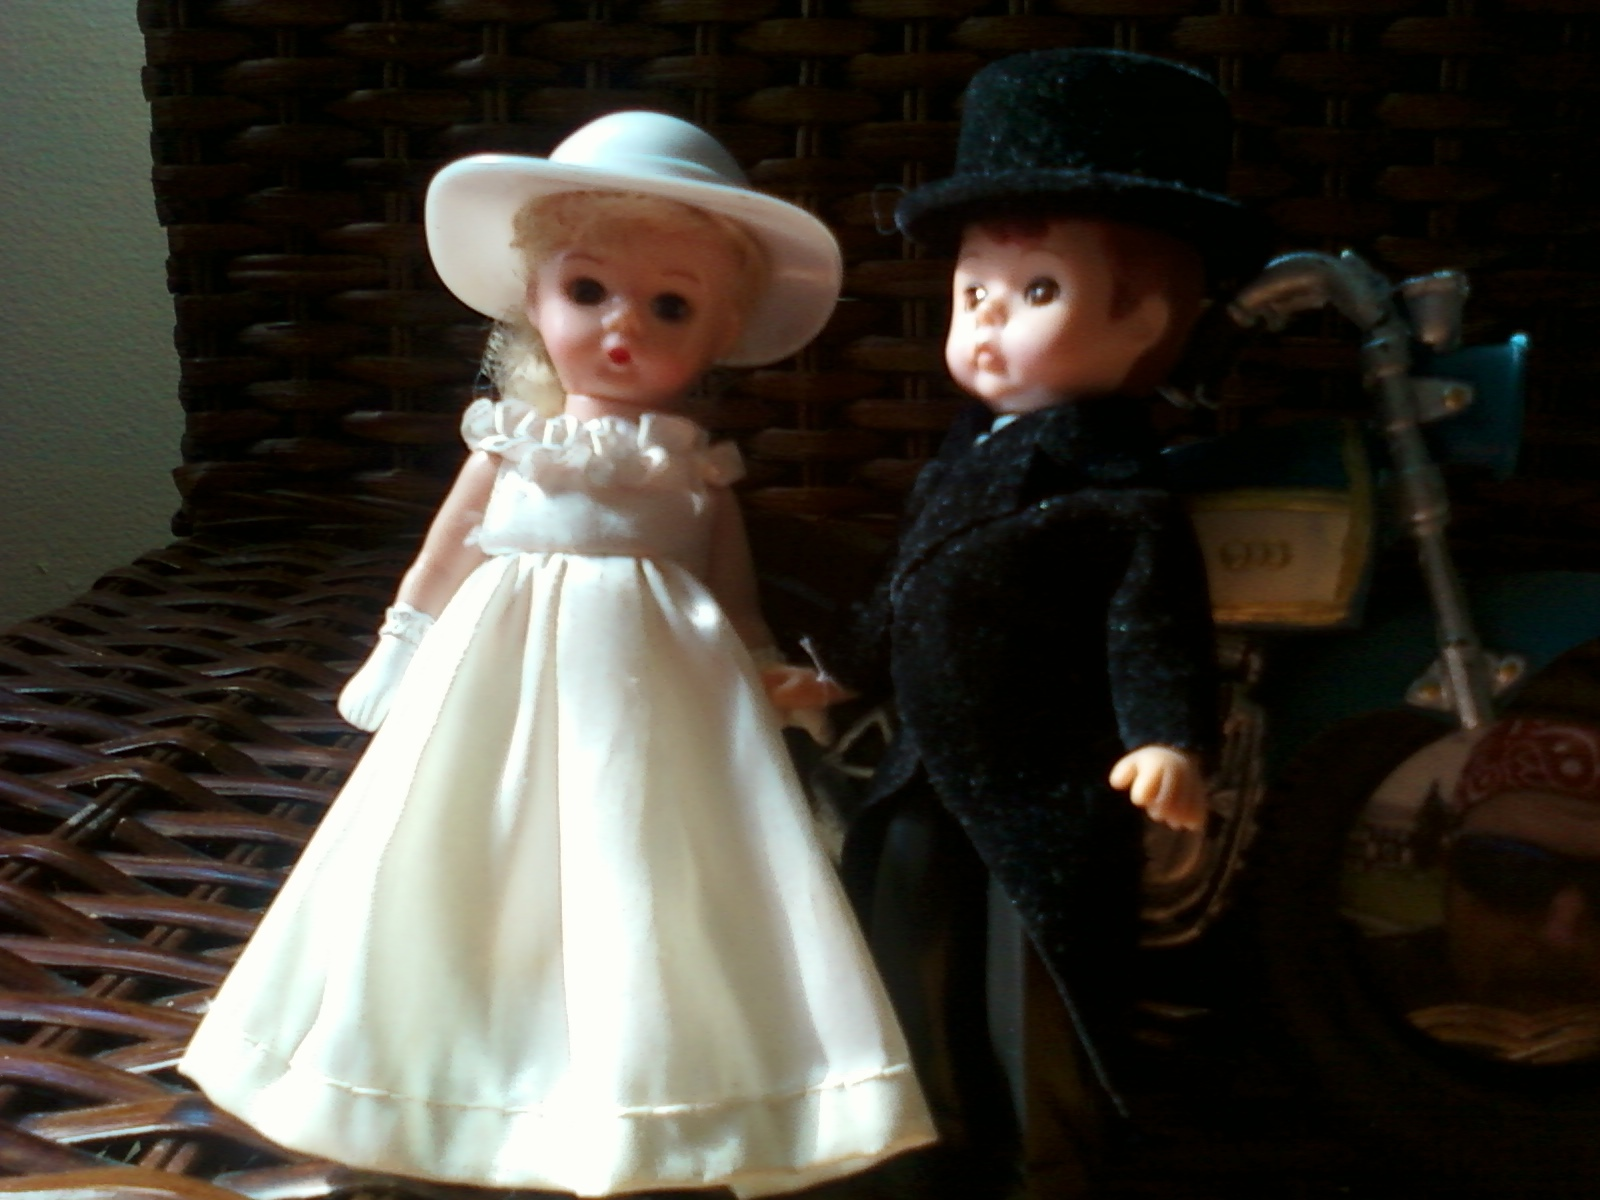 DIY, Reception, Flowers & Decor, Cakes, white, black, cake, Vintage, Vintage Wedding Cakes, Bride, Groom, Cutting, Toppers, Retro, Toys, Collectibles, Dolls